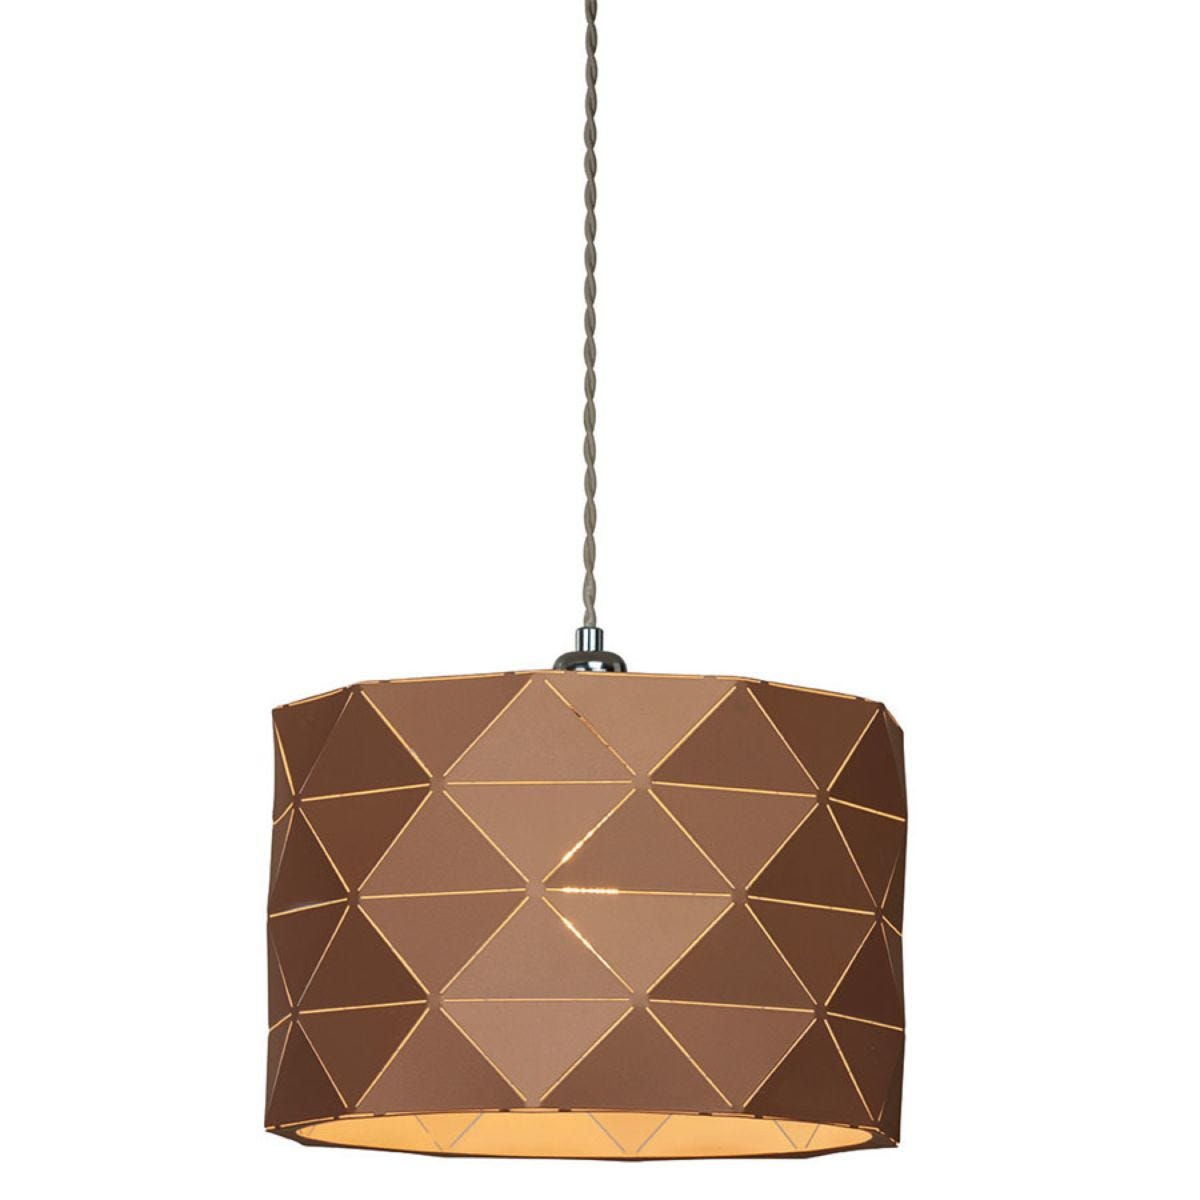 Village At Home Shadow Ceiling Light Pendant - Gold